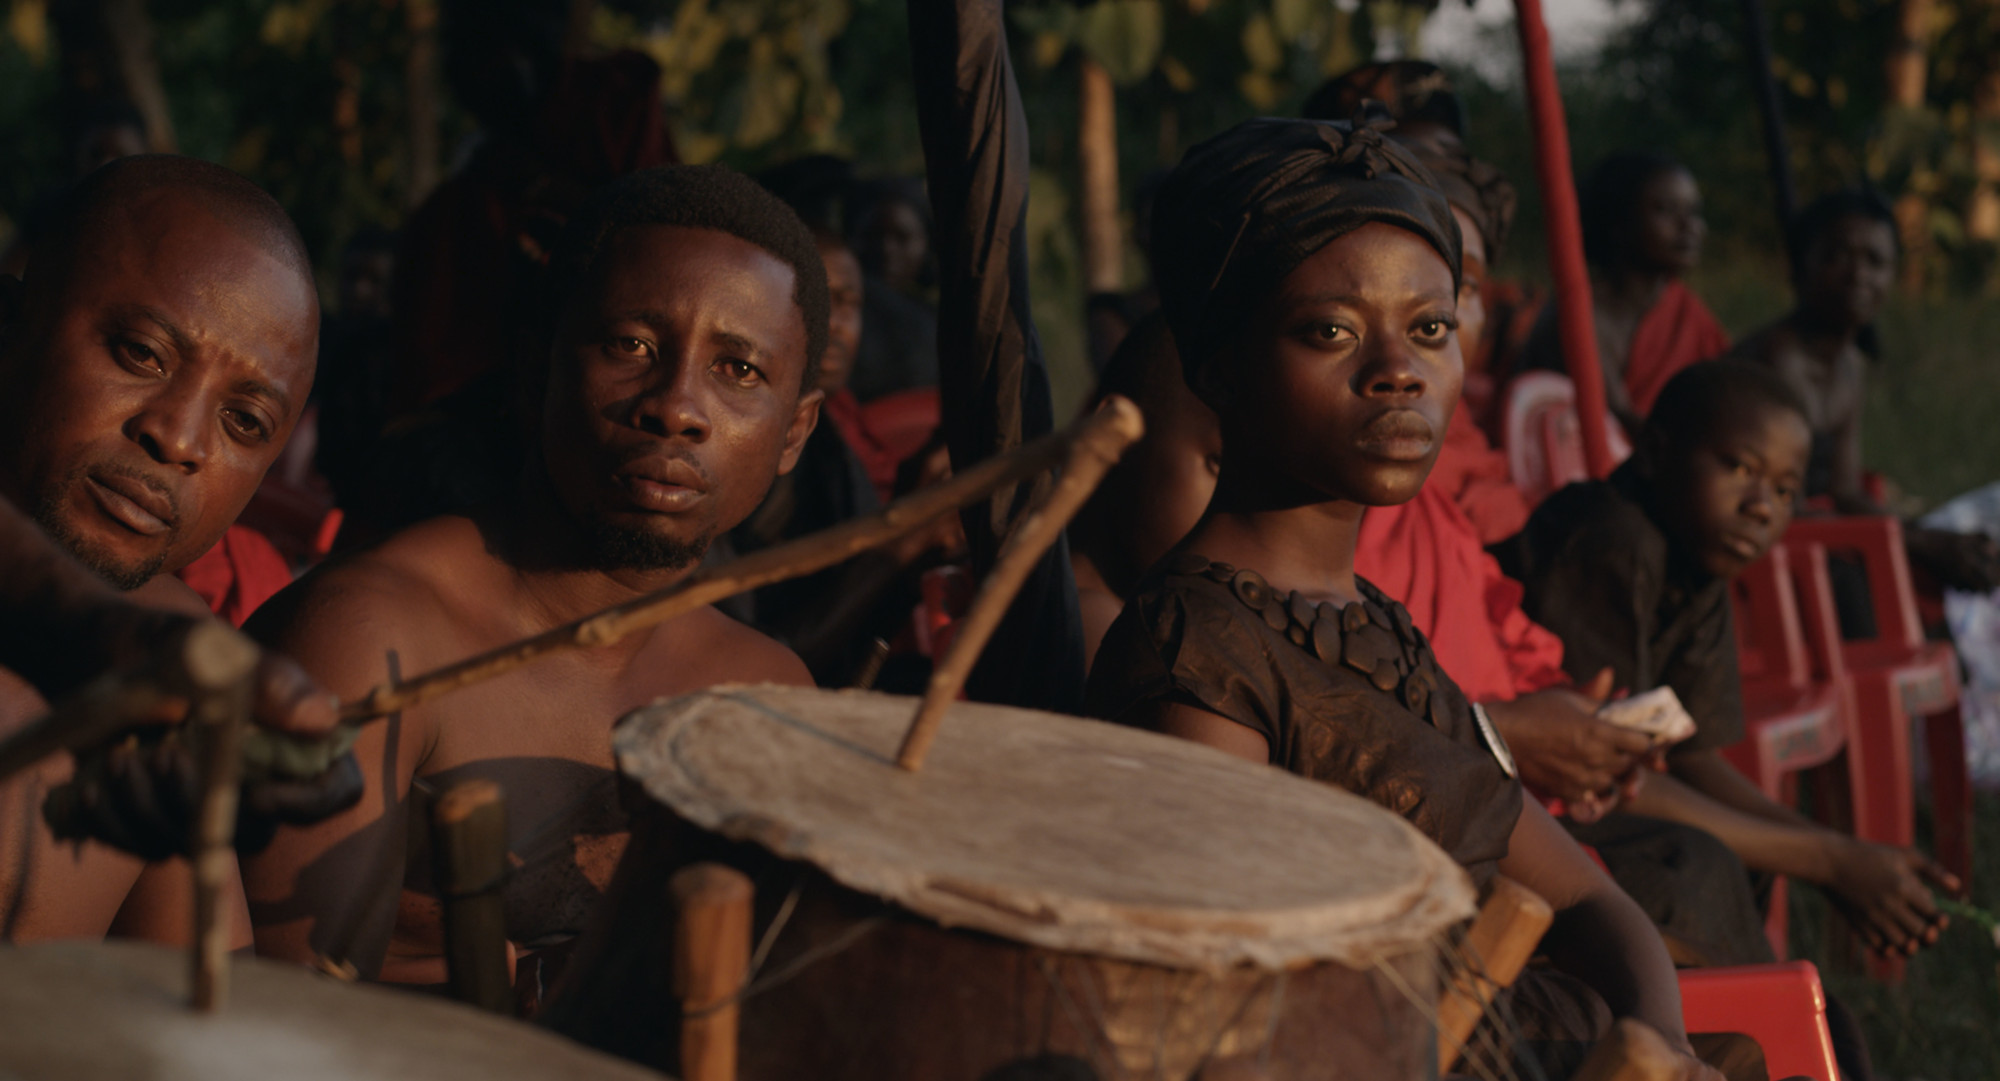 Kwaku Ananse. 2013. Germany. Directed by Akosua Adoma Owusu. Courtesy of the filmmaker